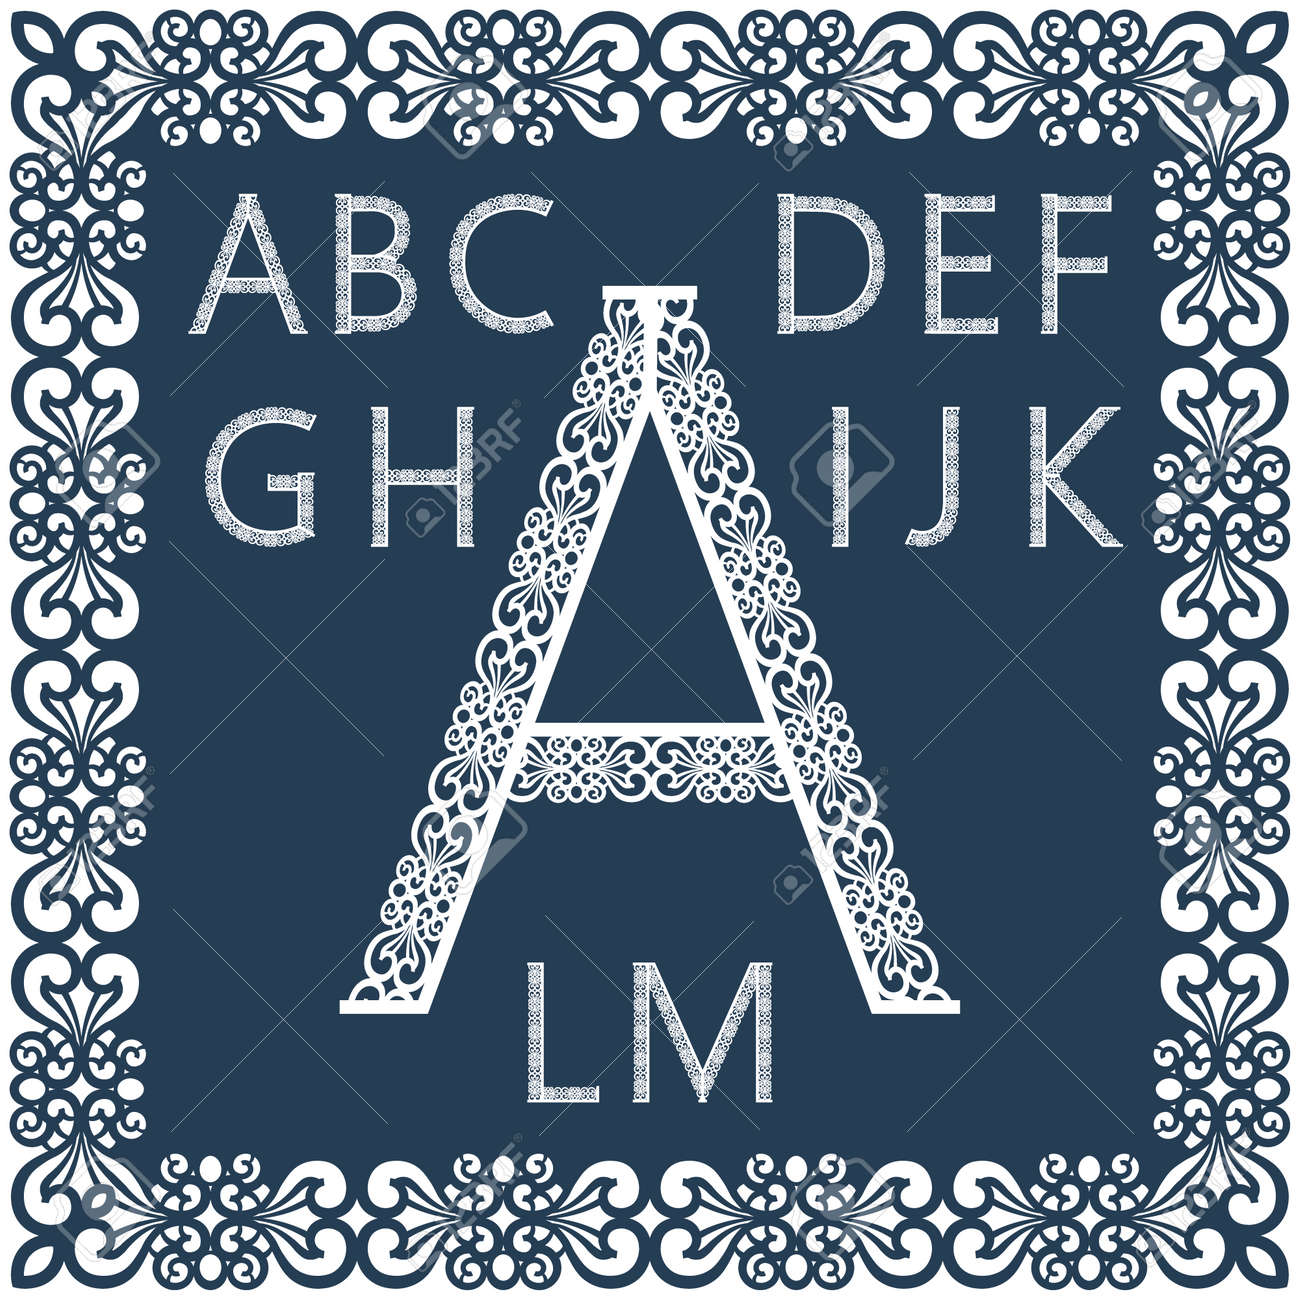 Templates For Cutting Out Letters Full English Alphabet May